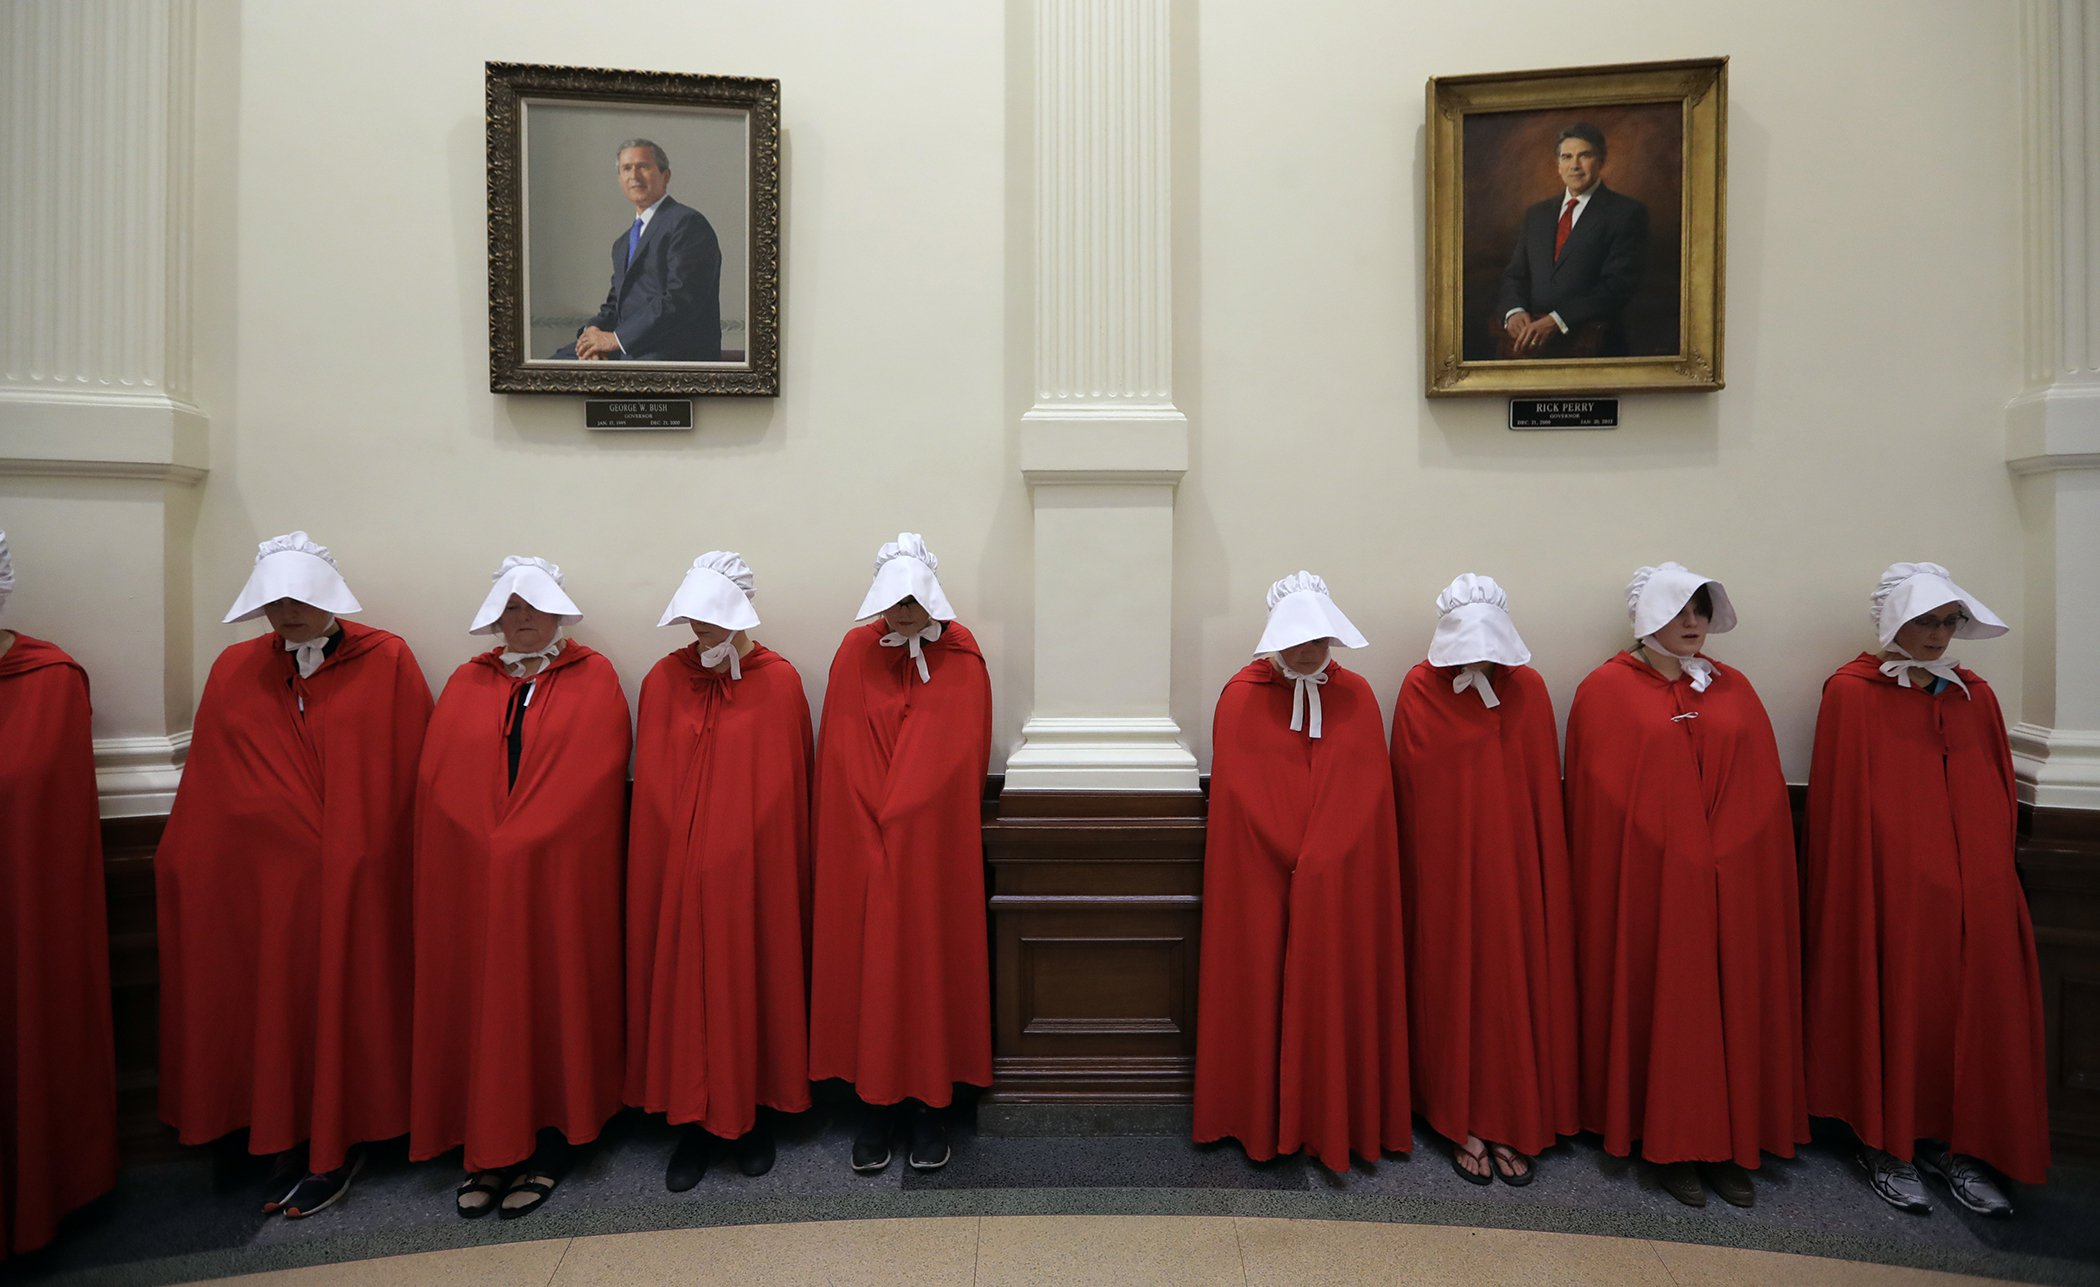 Women-In-2017-Handmaid's-Tale-Protest-Texas.jpg